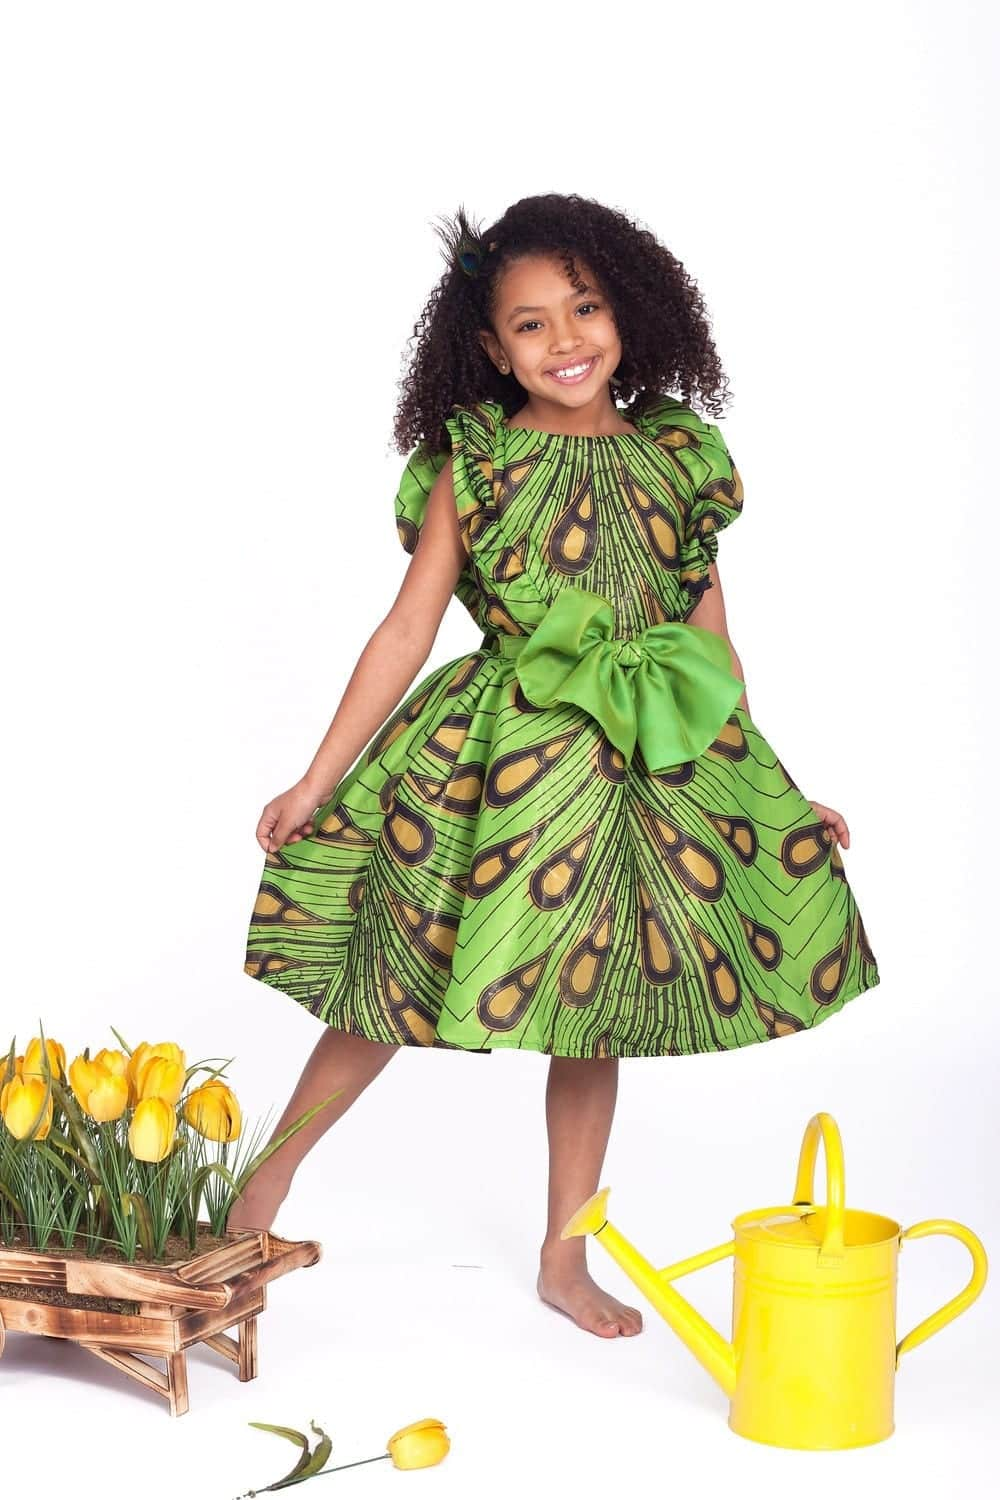 Shop timeless-styles and trendy girls' dresses at xianggangdishini.gq Find one-of-a-kind cute kids dresses for everyday & special occasions. Free shipping on all orders!